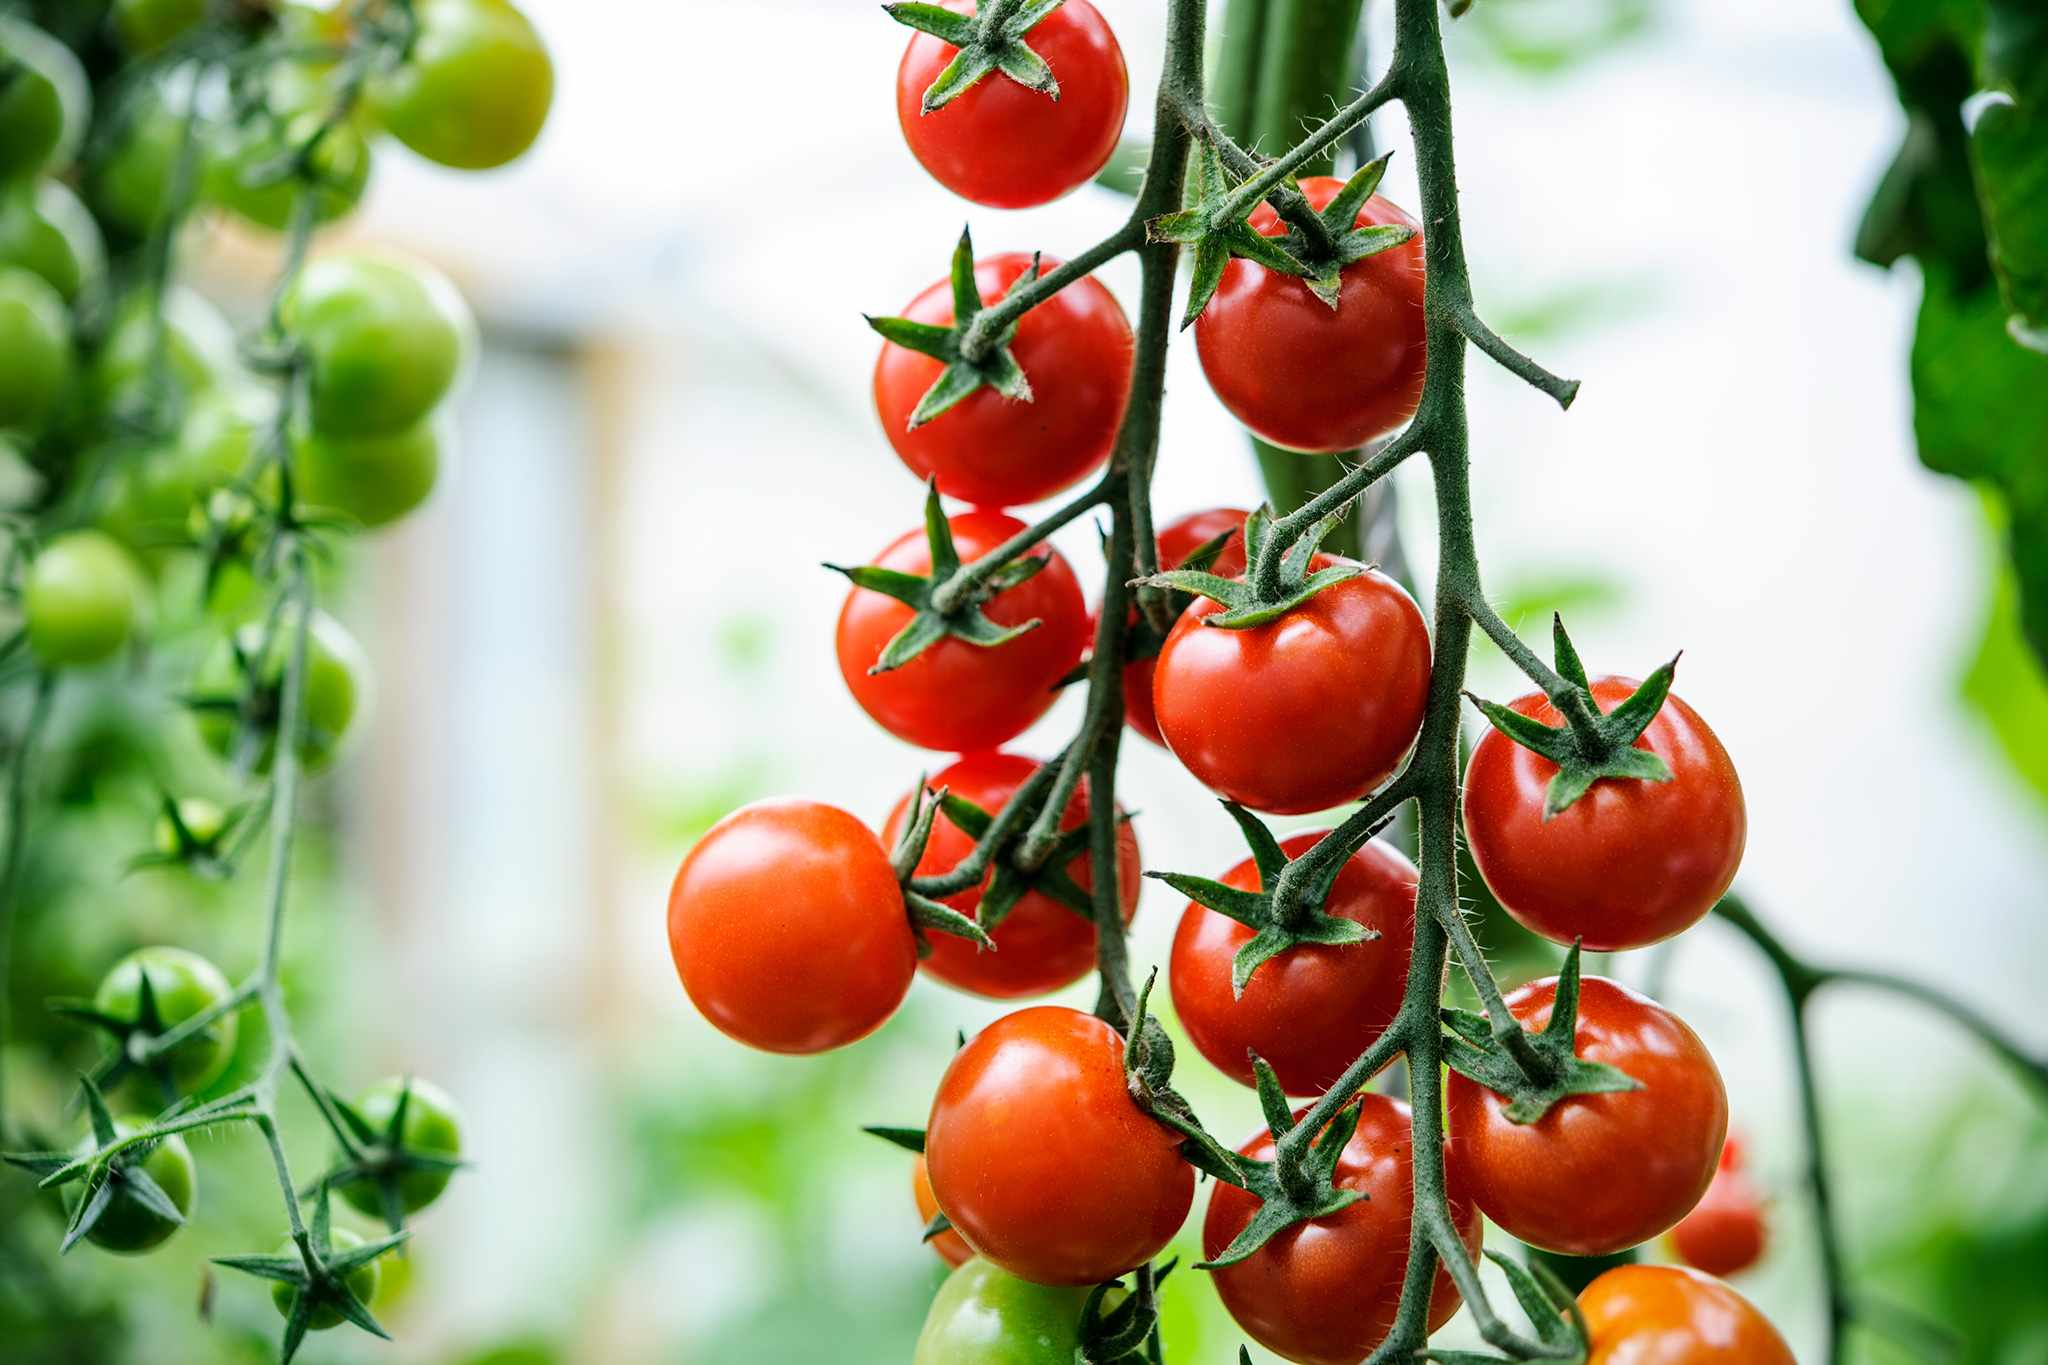 Tips for Growing Better Tomatoes